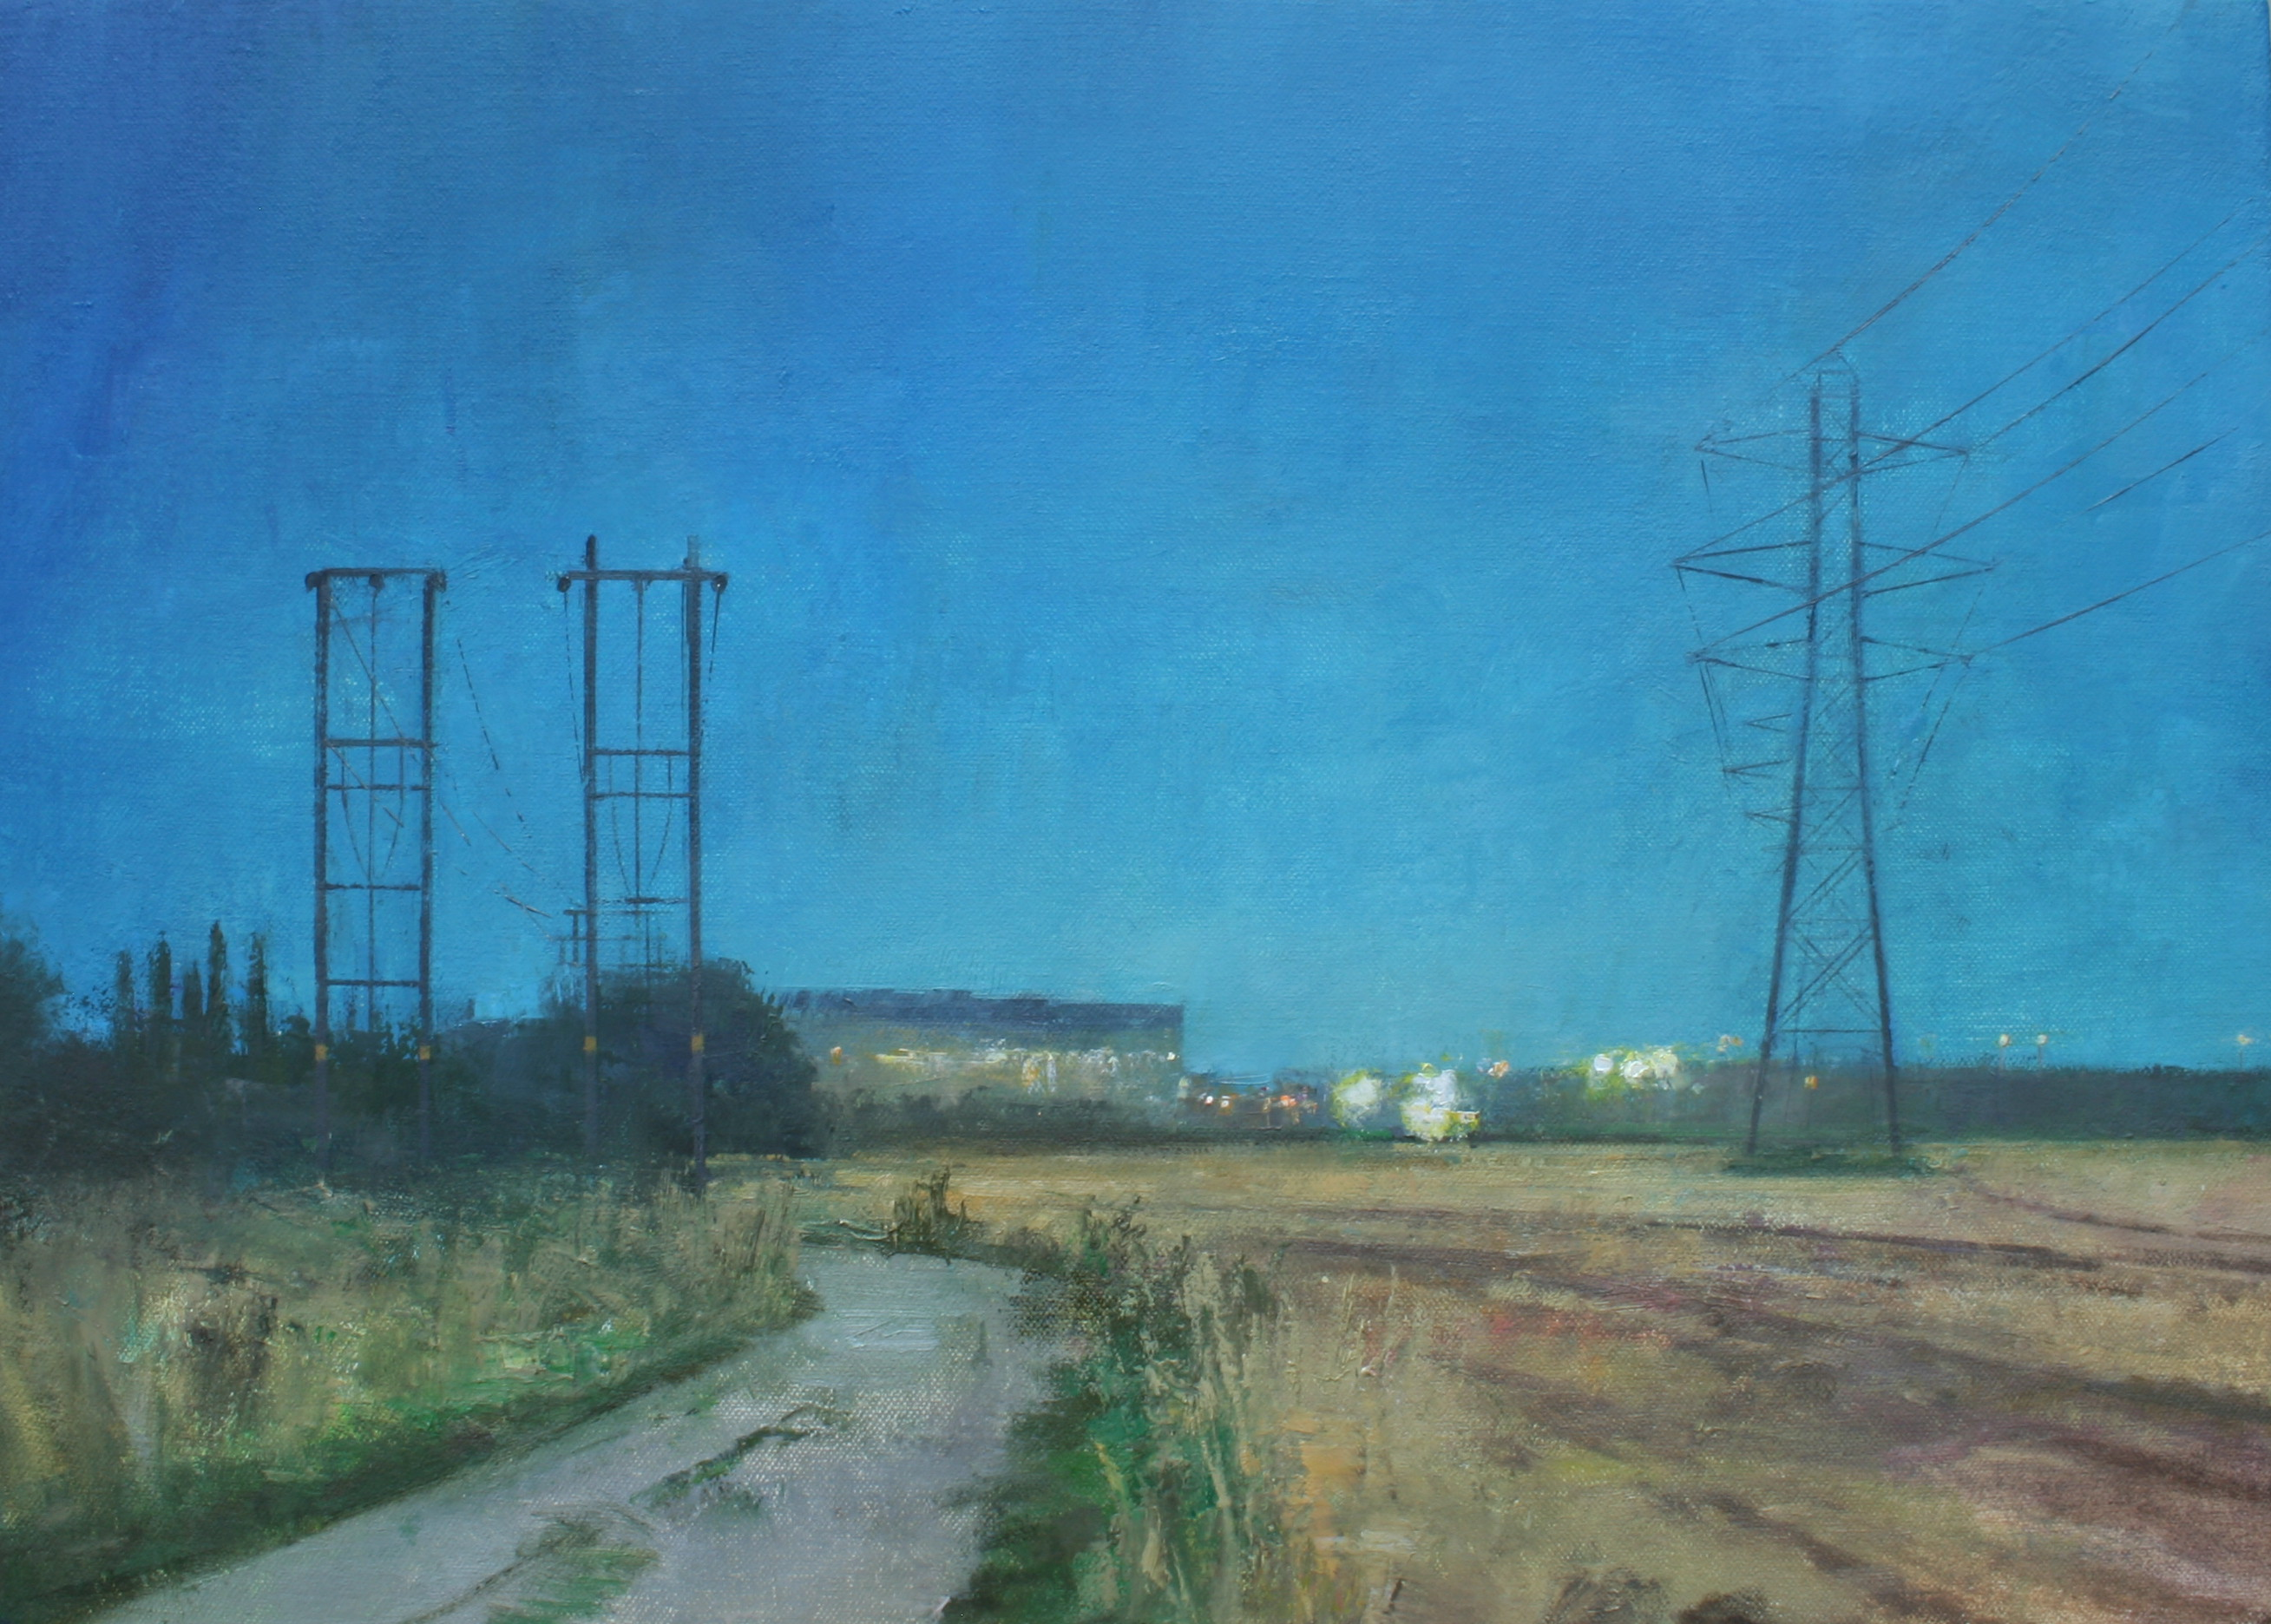 "Edgelands - near Rylands, Nottingham Oil on Canvas, 14 x 10"", £950 - Sold"